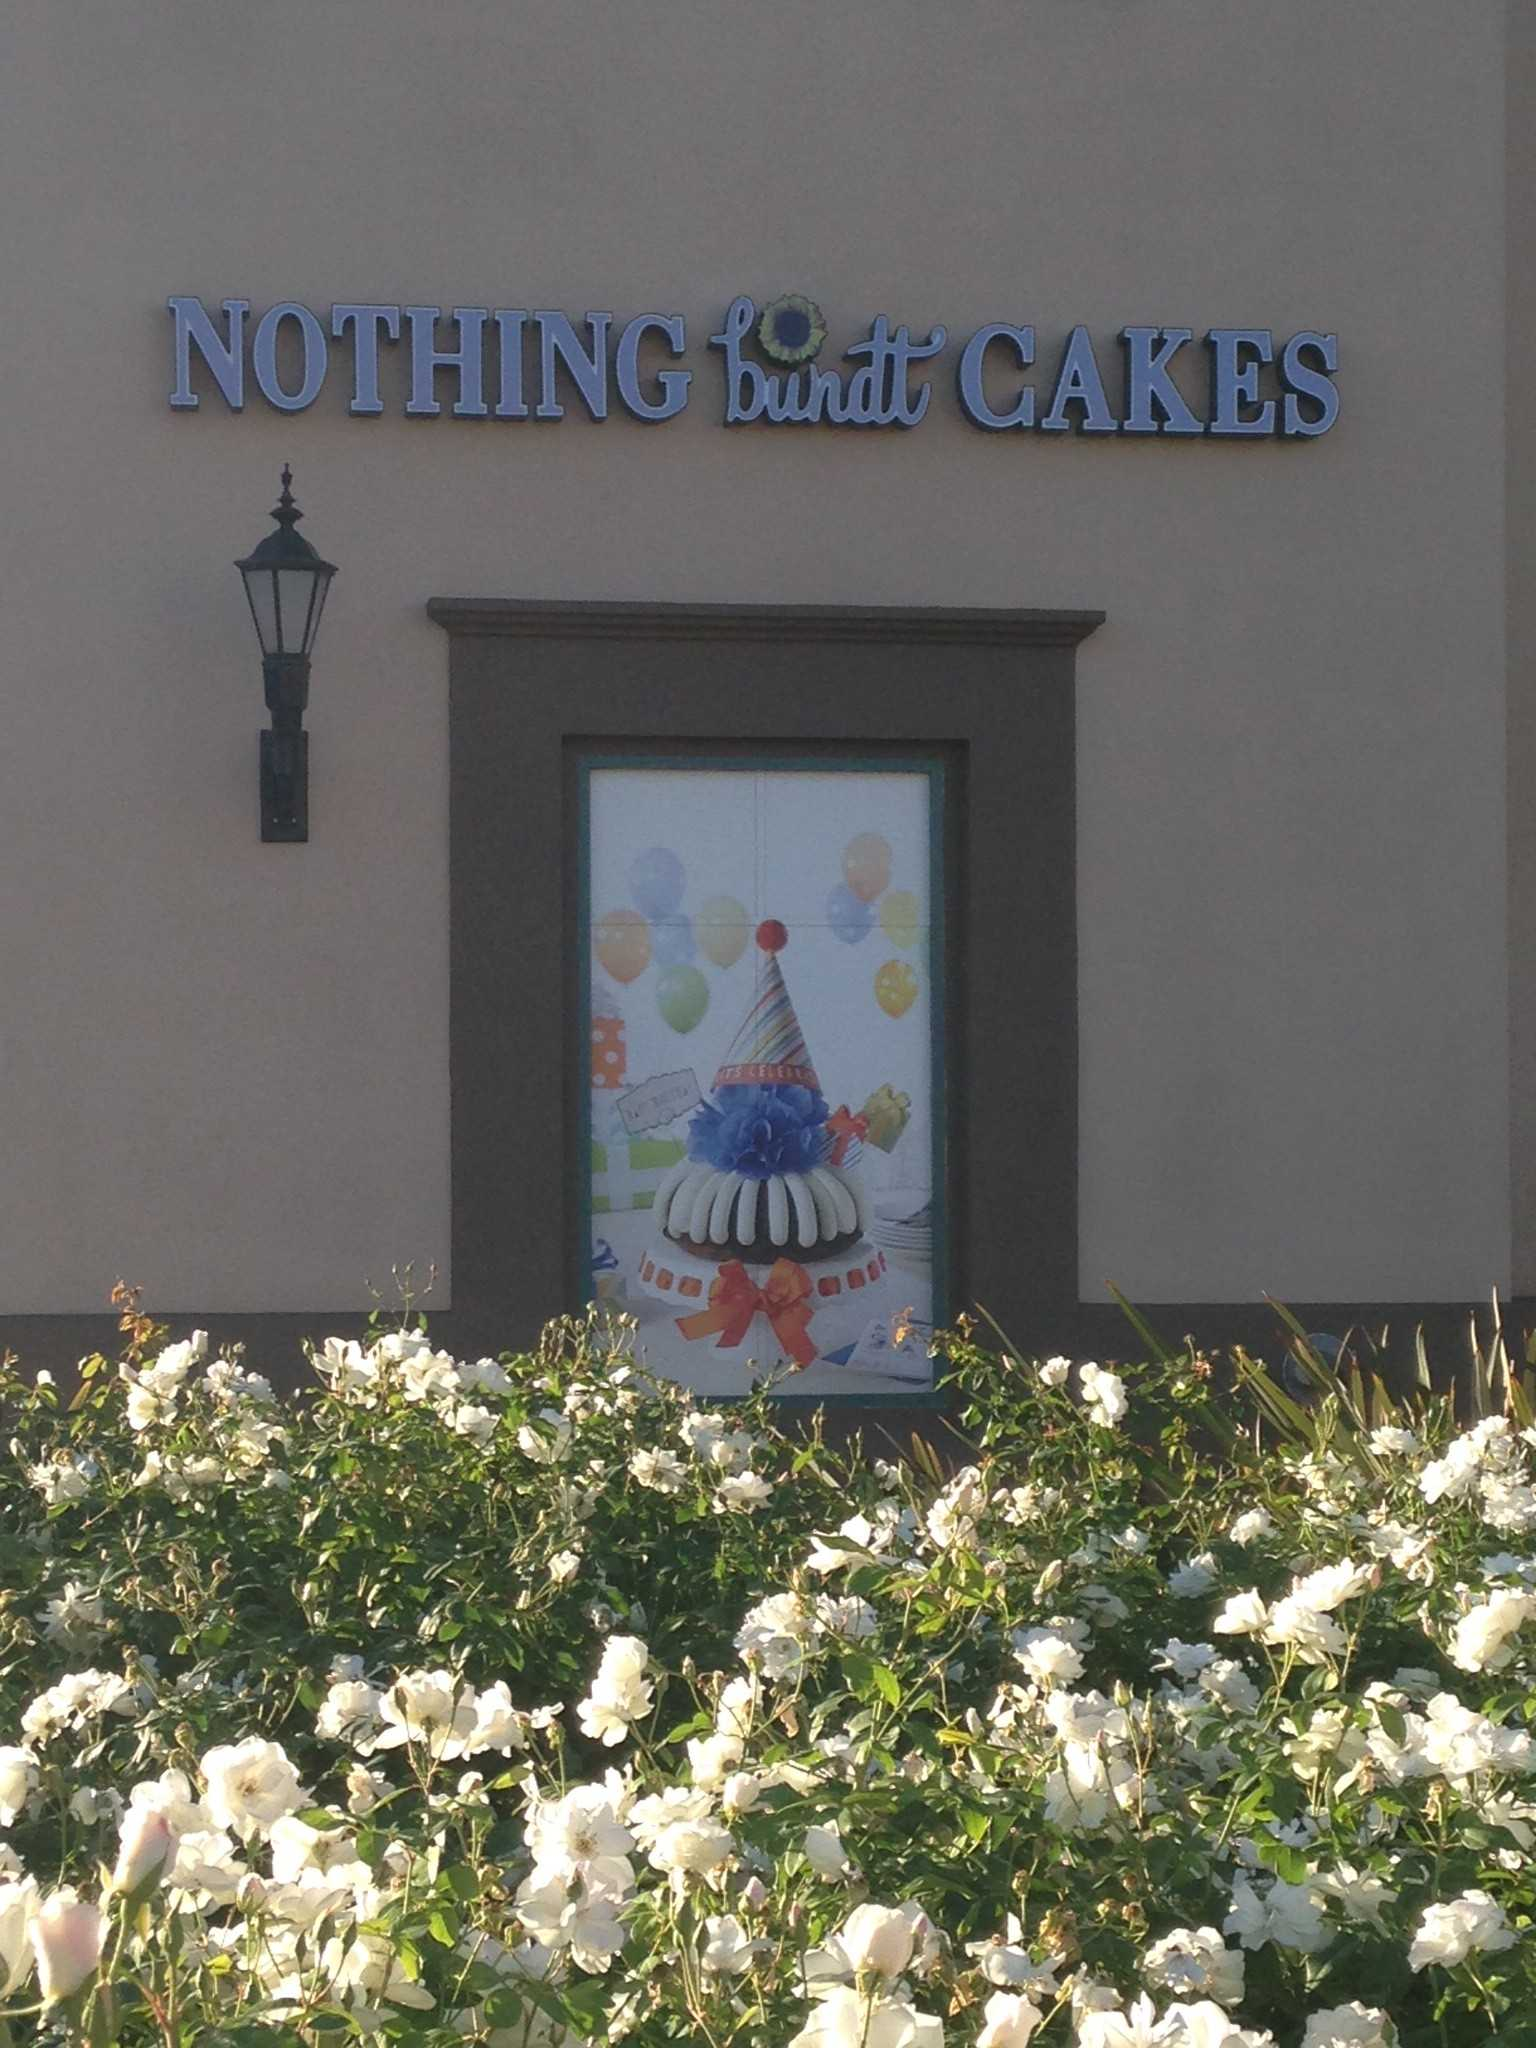 """Nothing Bundt Cakes"" is located on South Victoria Avenue. Credit: Julia Fickenscher/The Foothill Dragon Press"